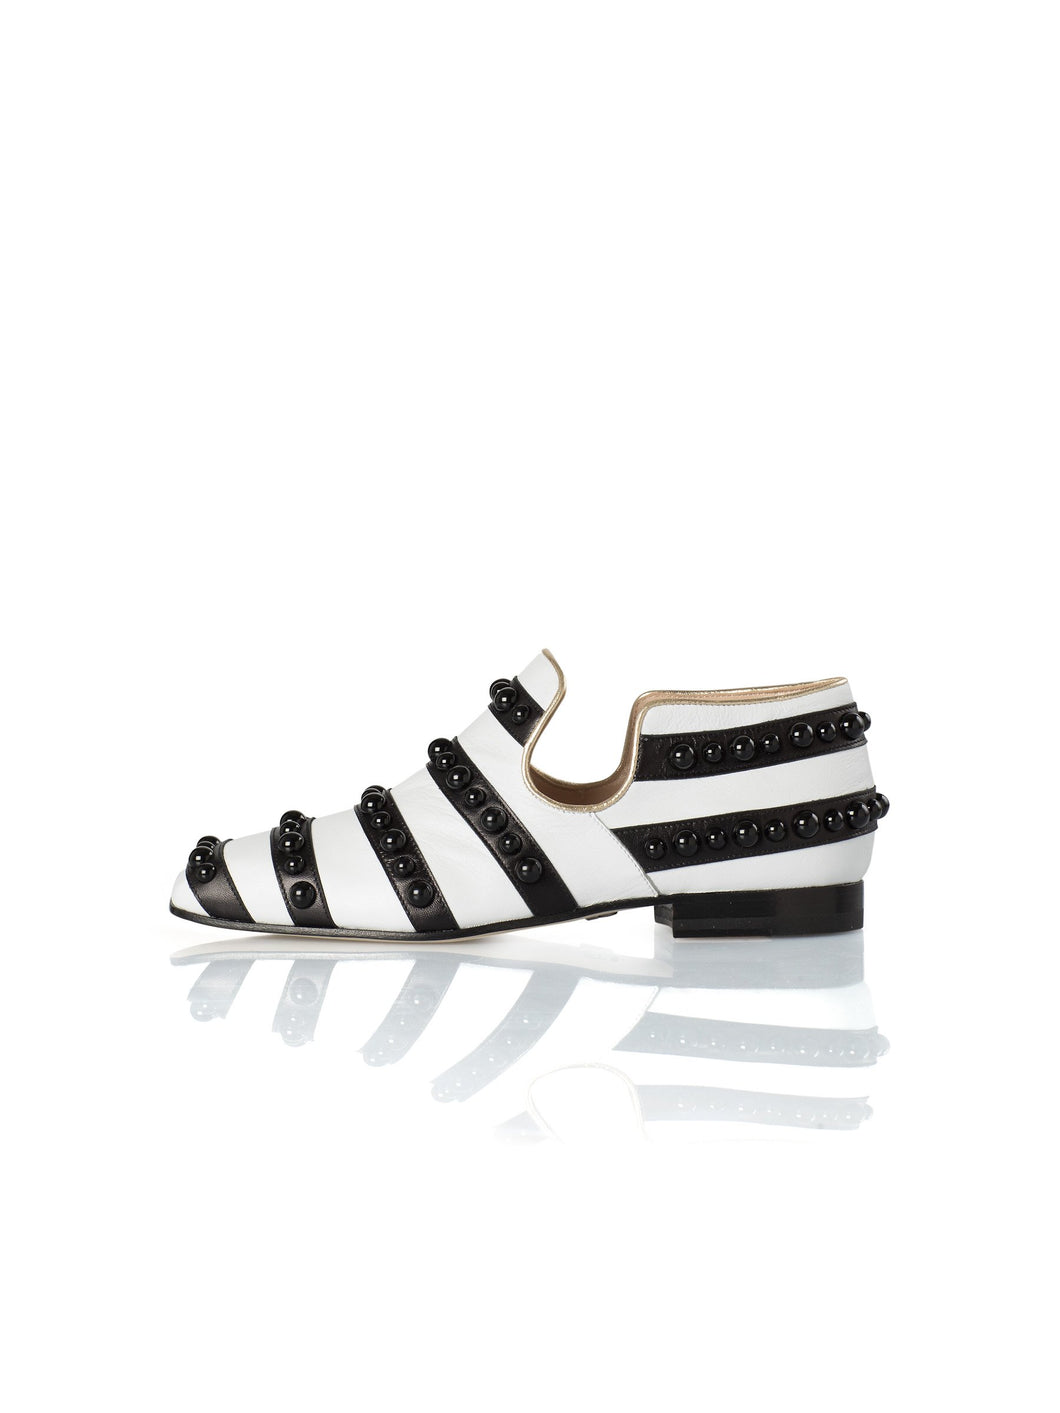 Iris Studs Flat in Black & White stripes & studs